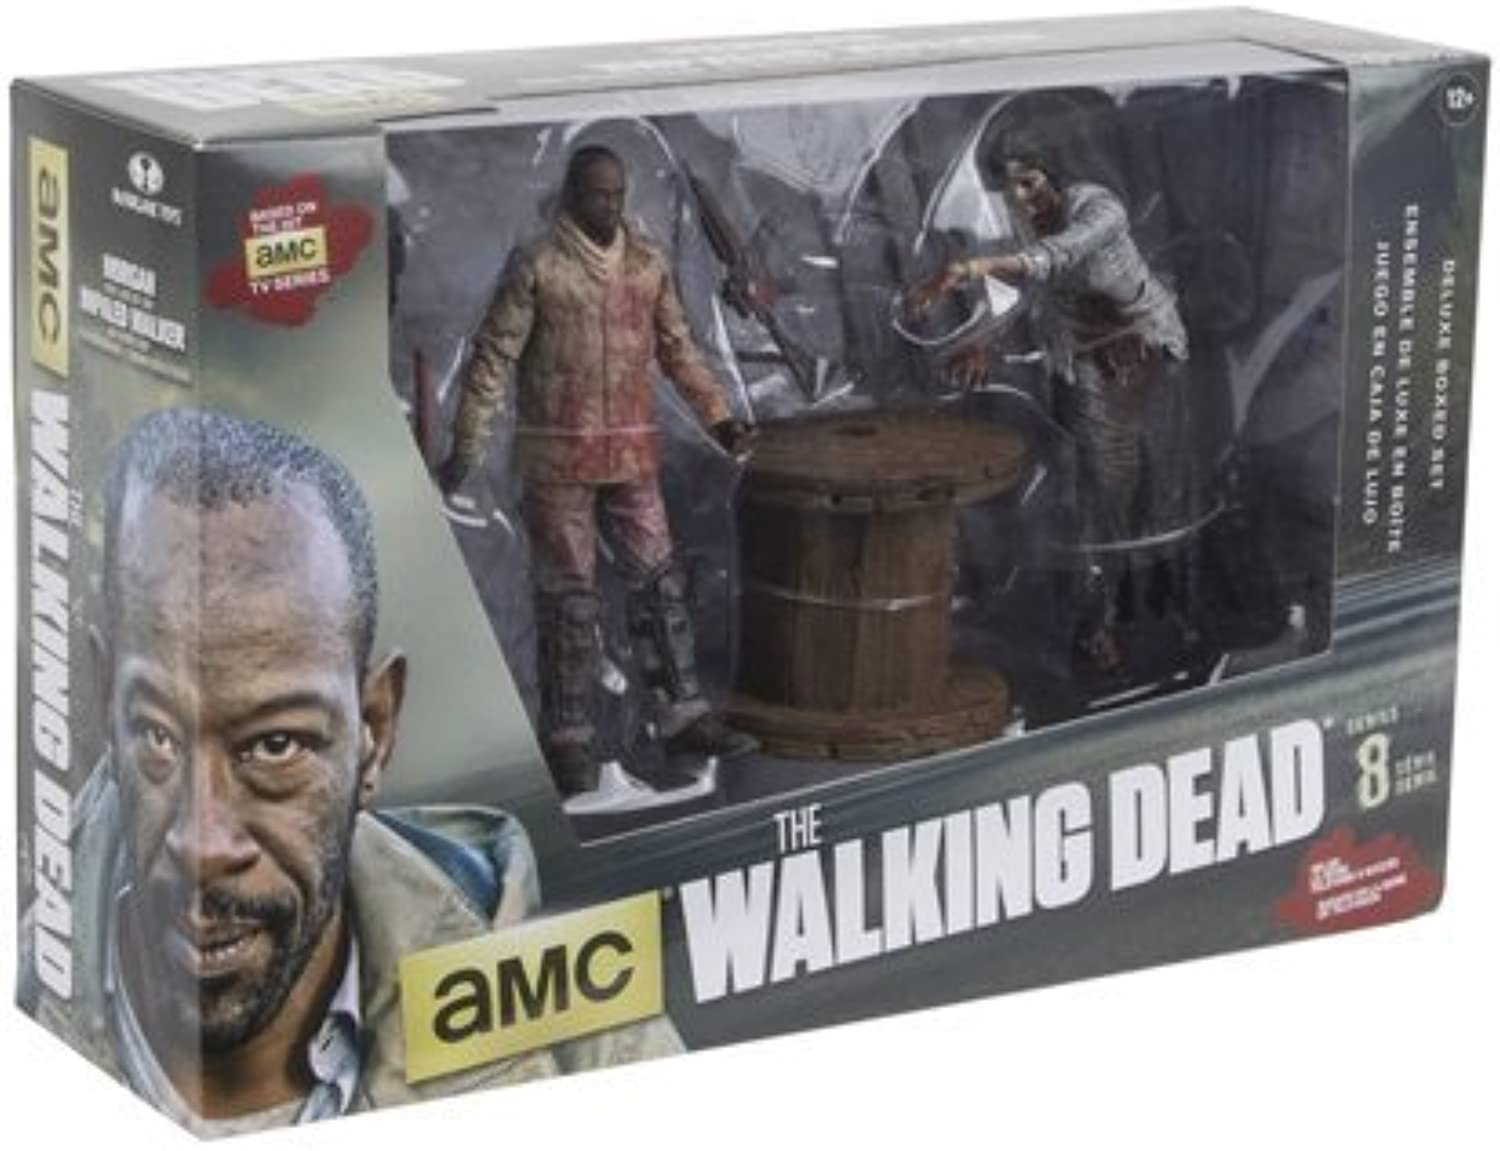 McFarlane Toys The Walking Dead TV Morgan Jones with Impaled Walker and Spike Trap Deluxe Box Action Figure by Unknown